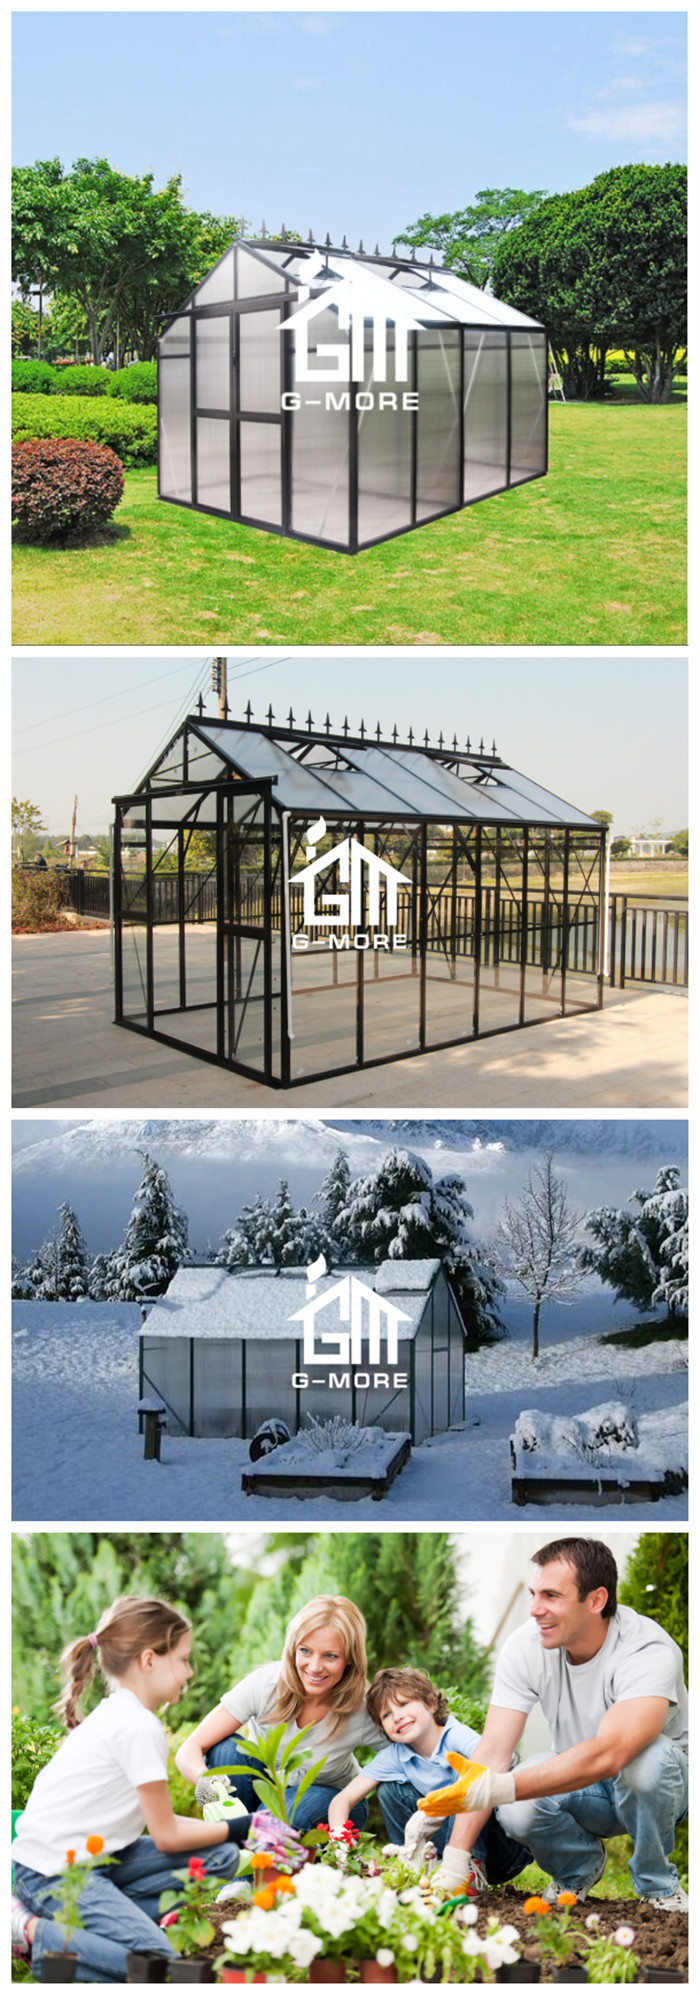 G-MORE Premium Imperial Series, 8'x8', Optional PC/Glass Glazing, Freely Extended Easy DIY Glasshouse/Sun Room (GM34404-B)